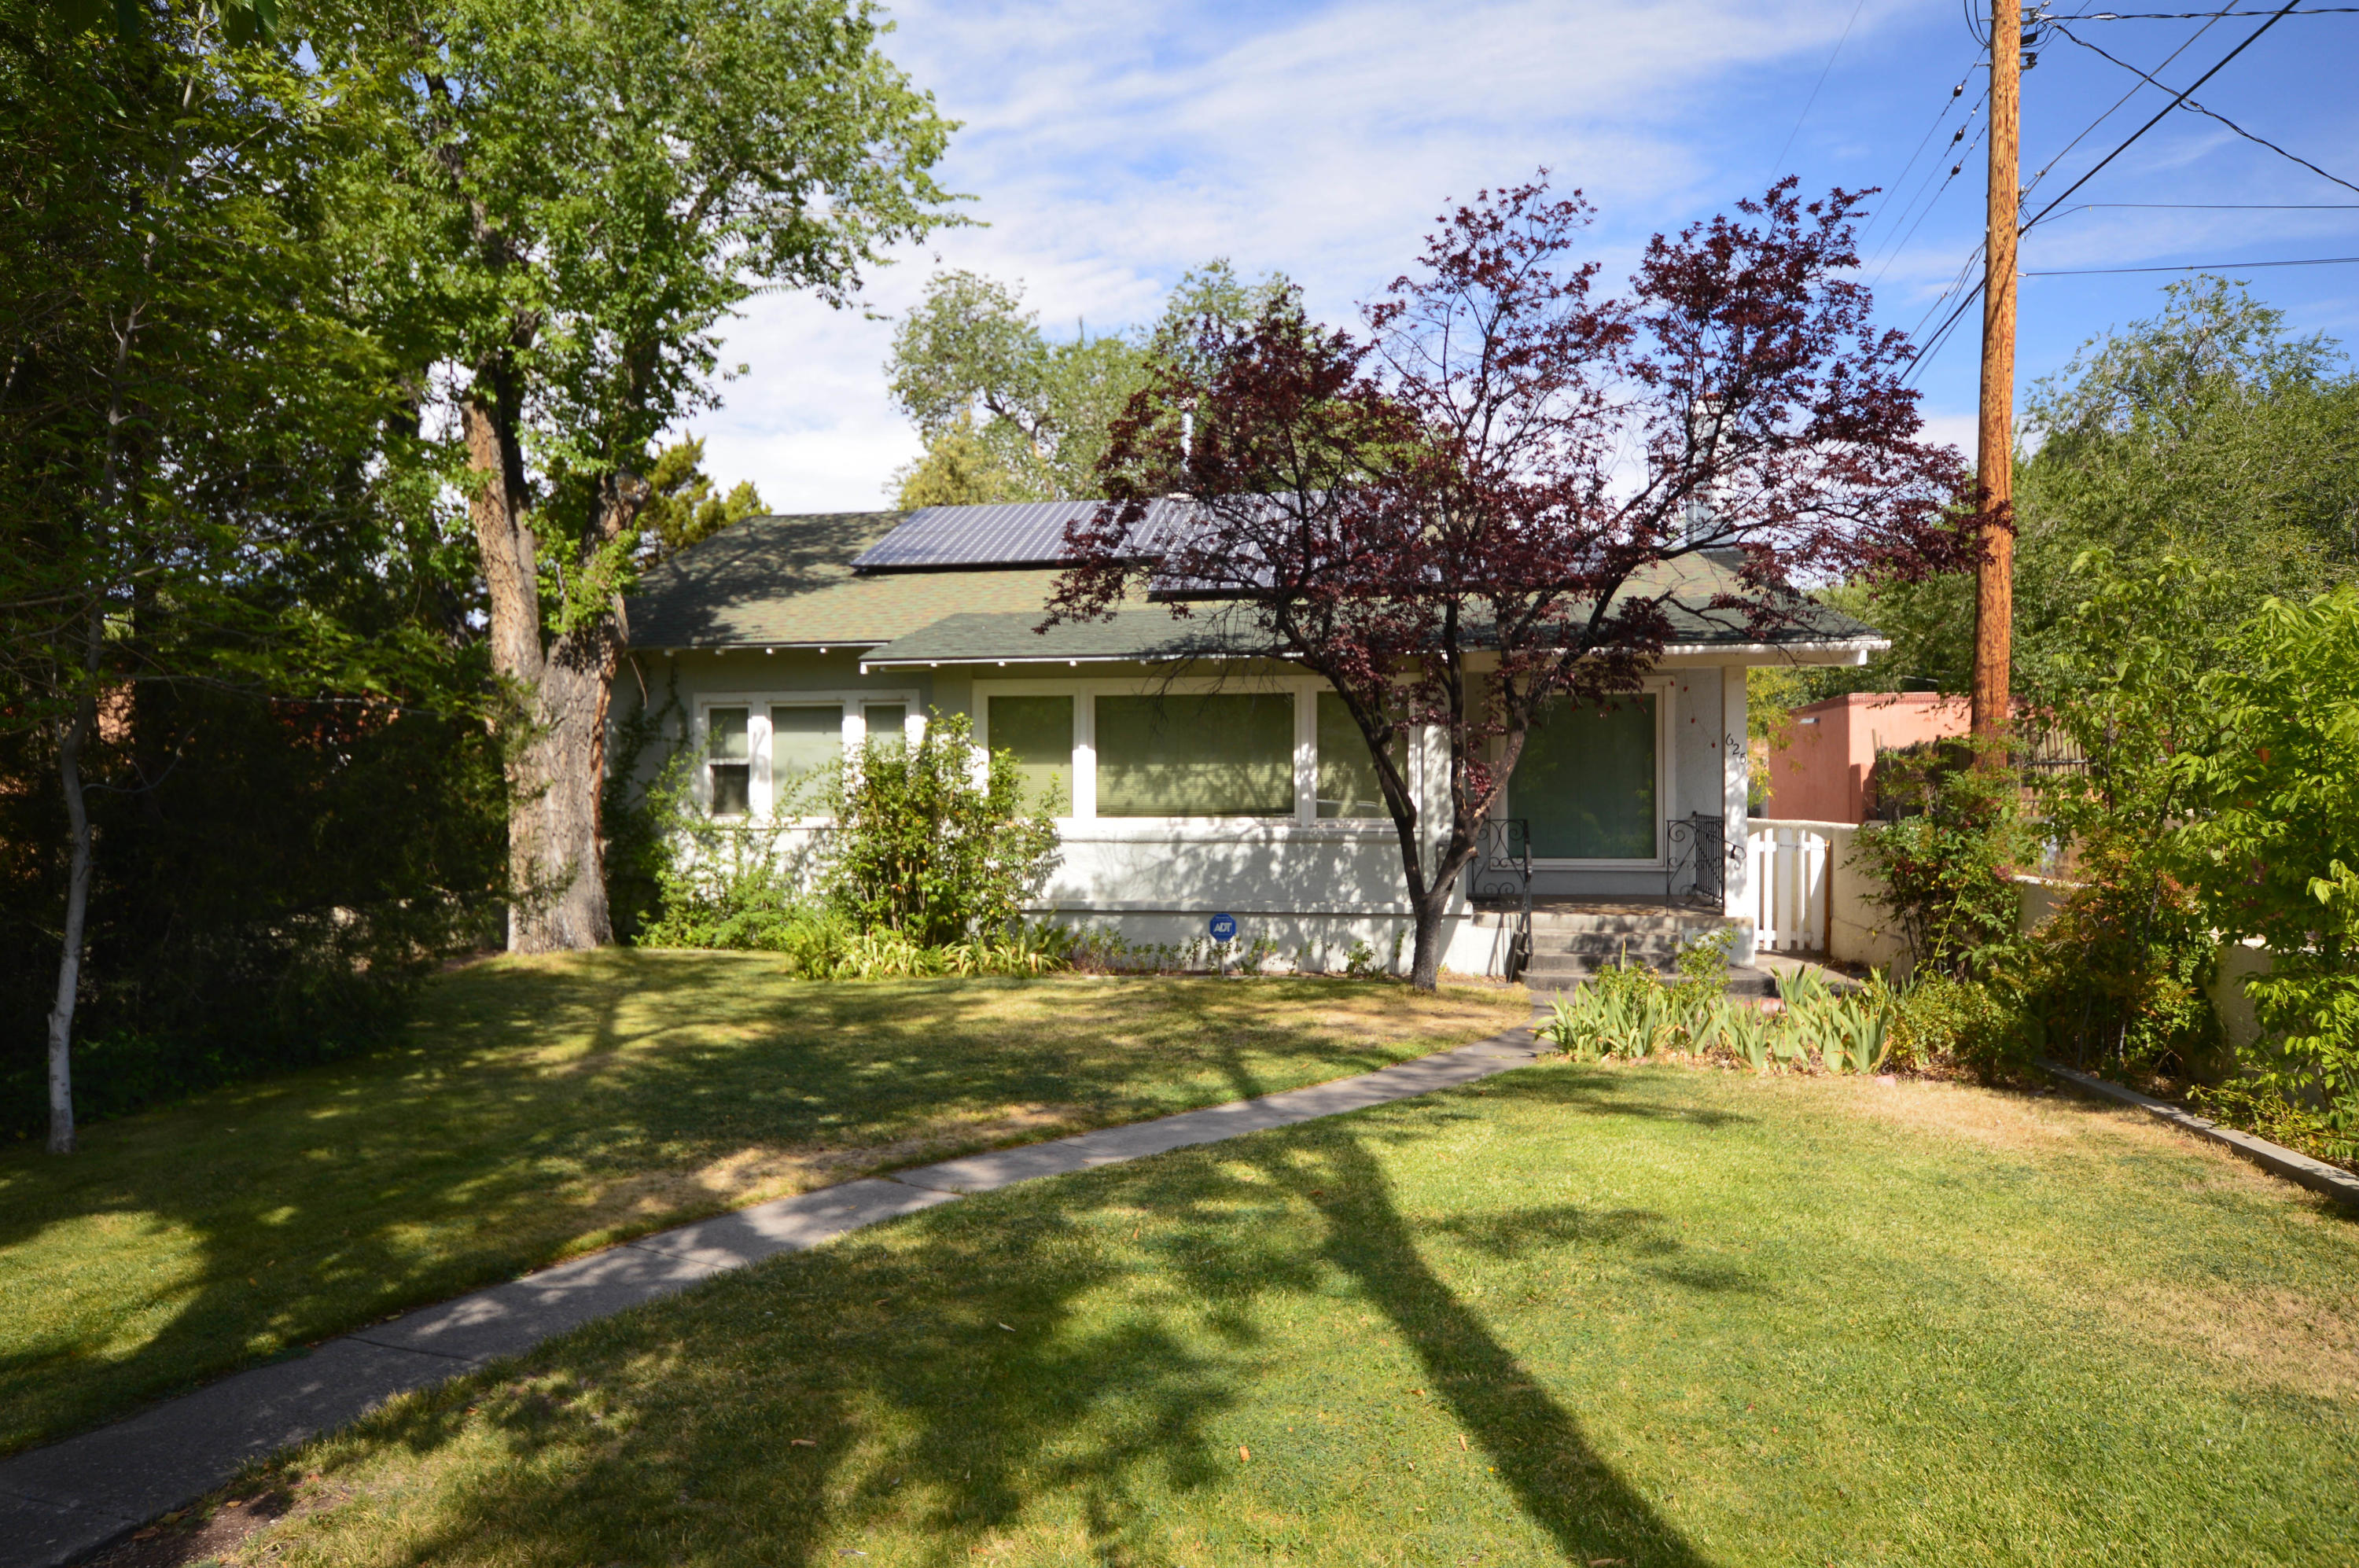 625 Spruce Street NE Property Photo - Albuquerque, NM real estate listing